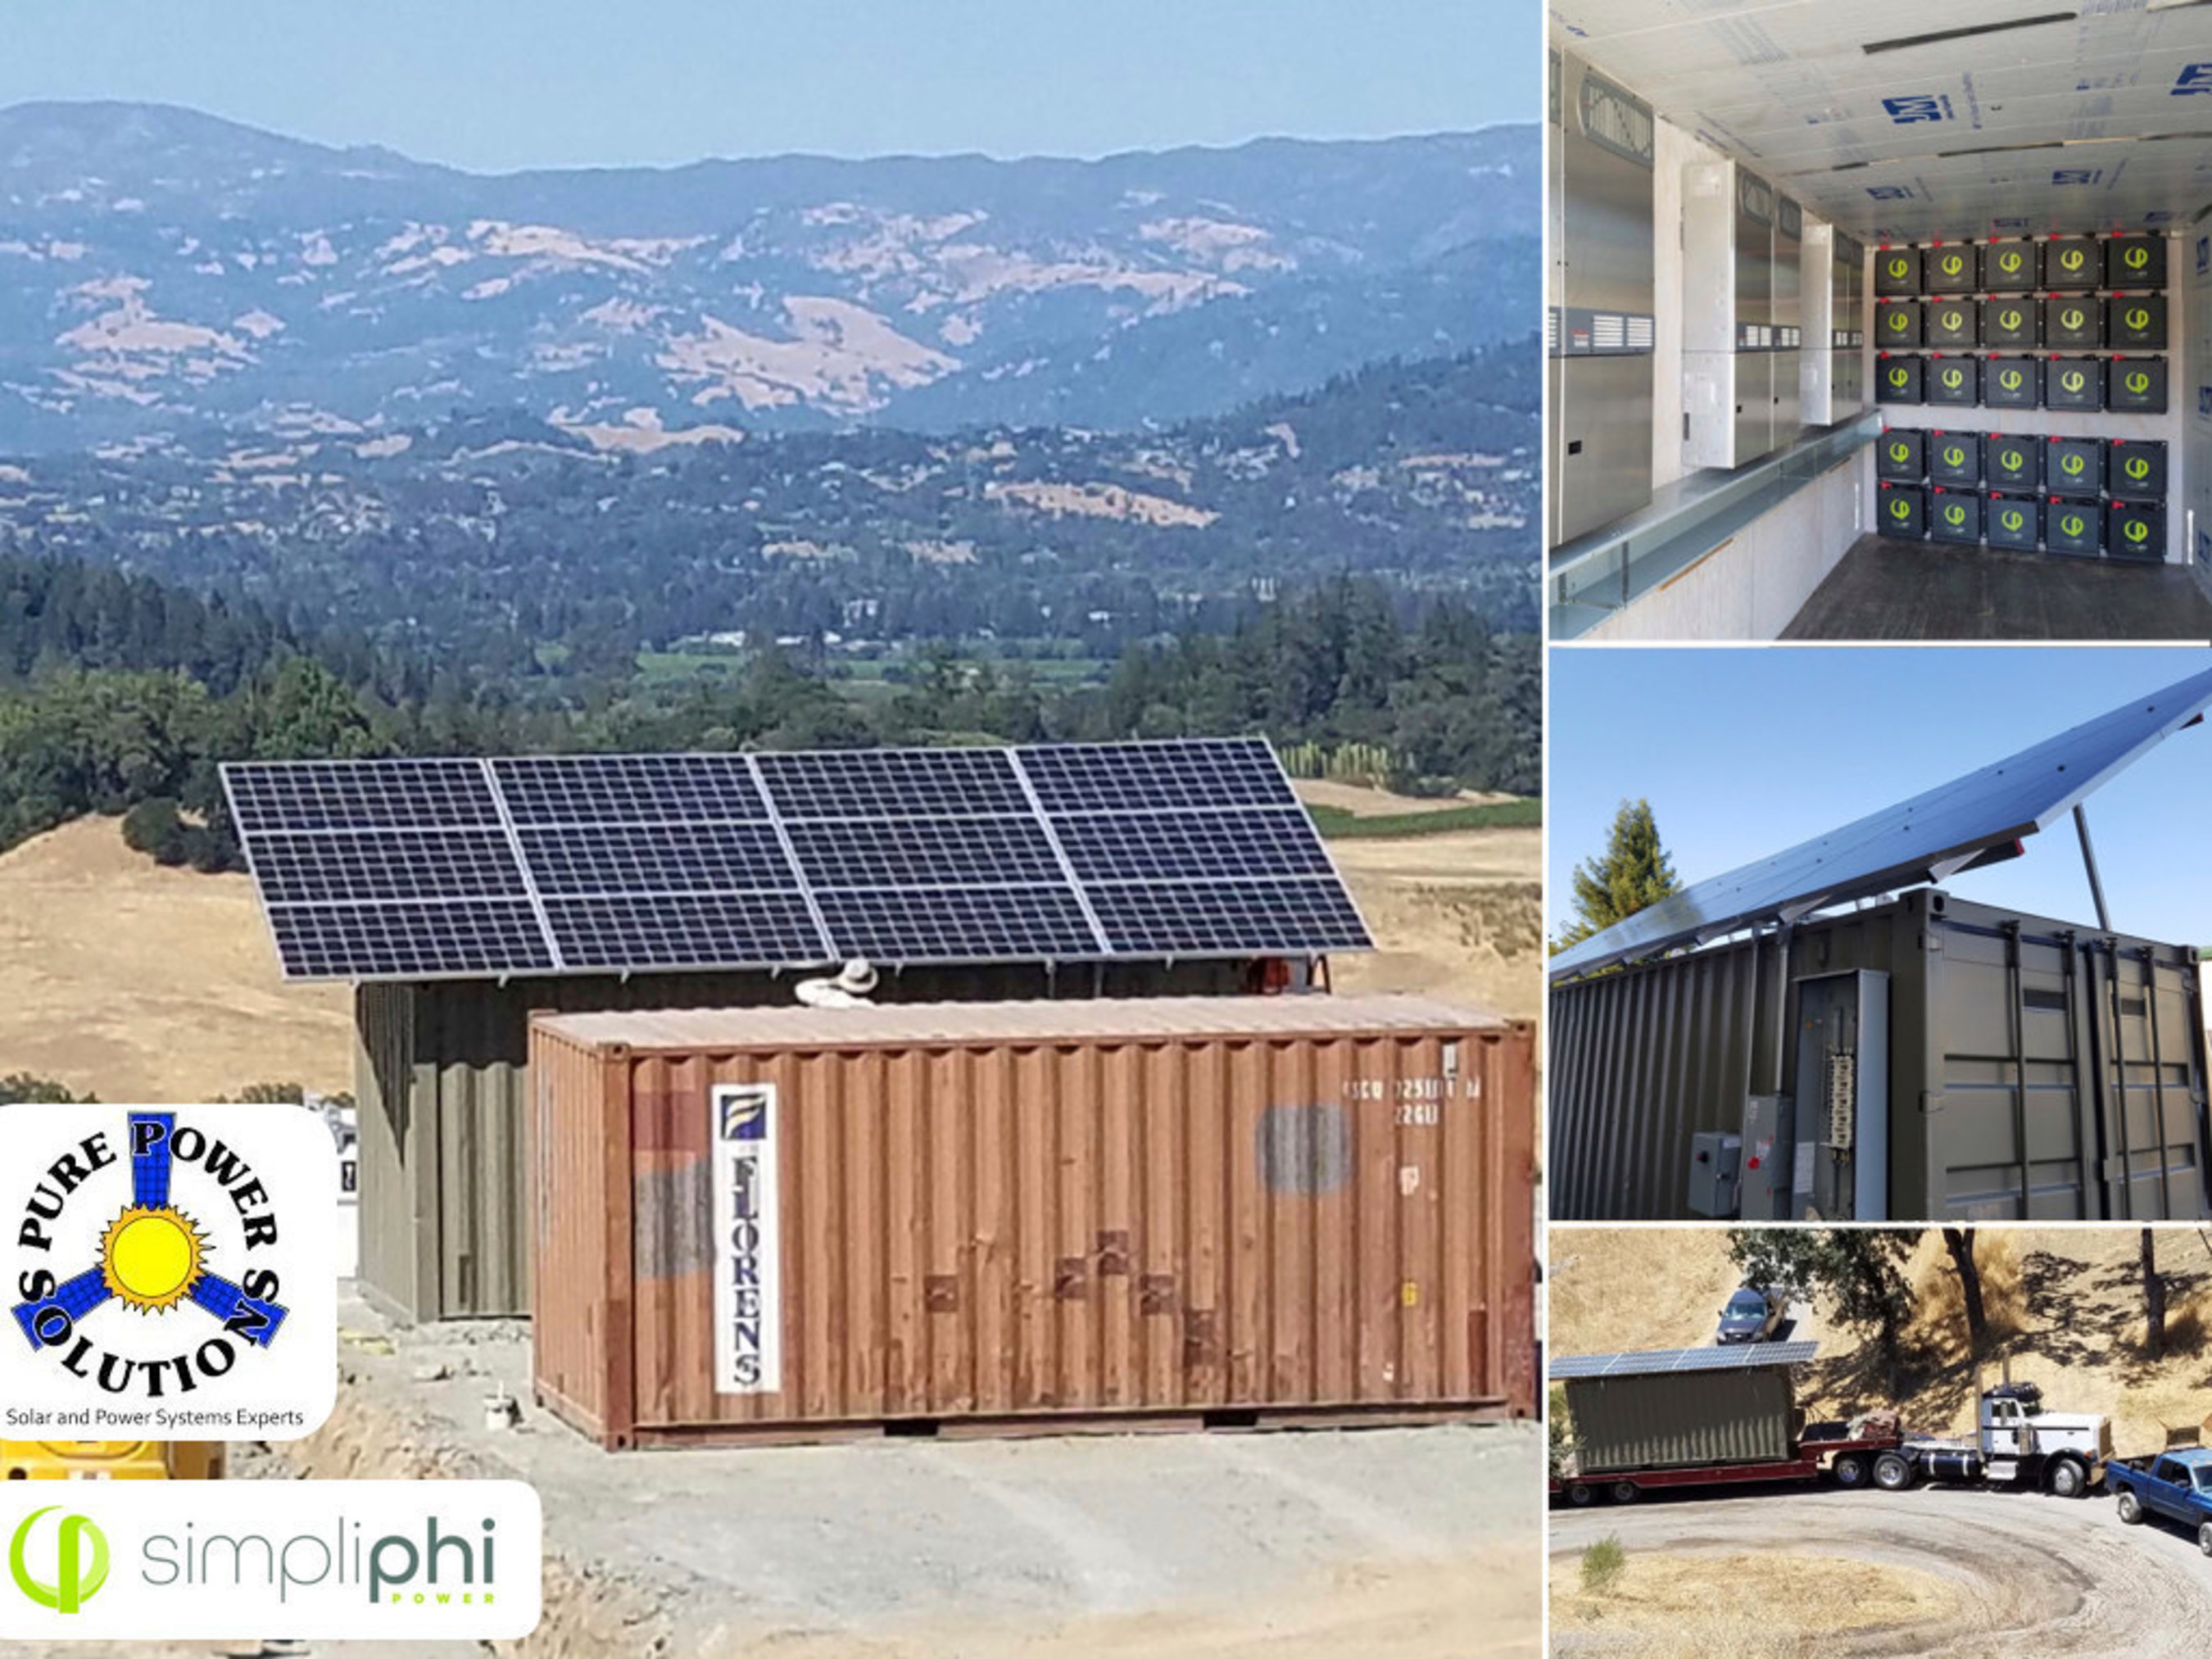 Using 85 kwh of SimpliPhi Power 3.4 batteries, Pure Power Solutions pre-built a 22 kW solar PV microgrid inside recycled shipping containers for 450-acre Vacherie Ranch, saving the family enterprise more than a million dollars over a grid extension.